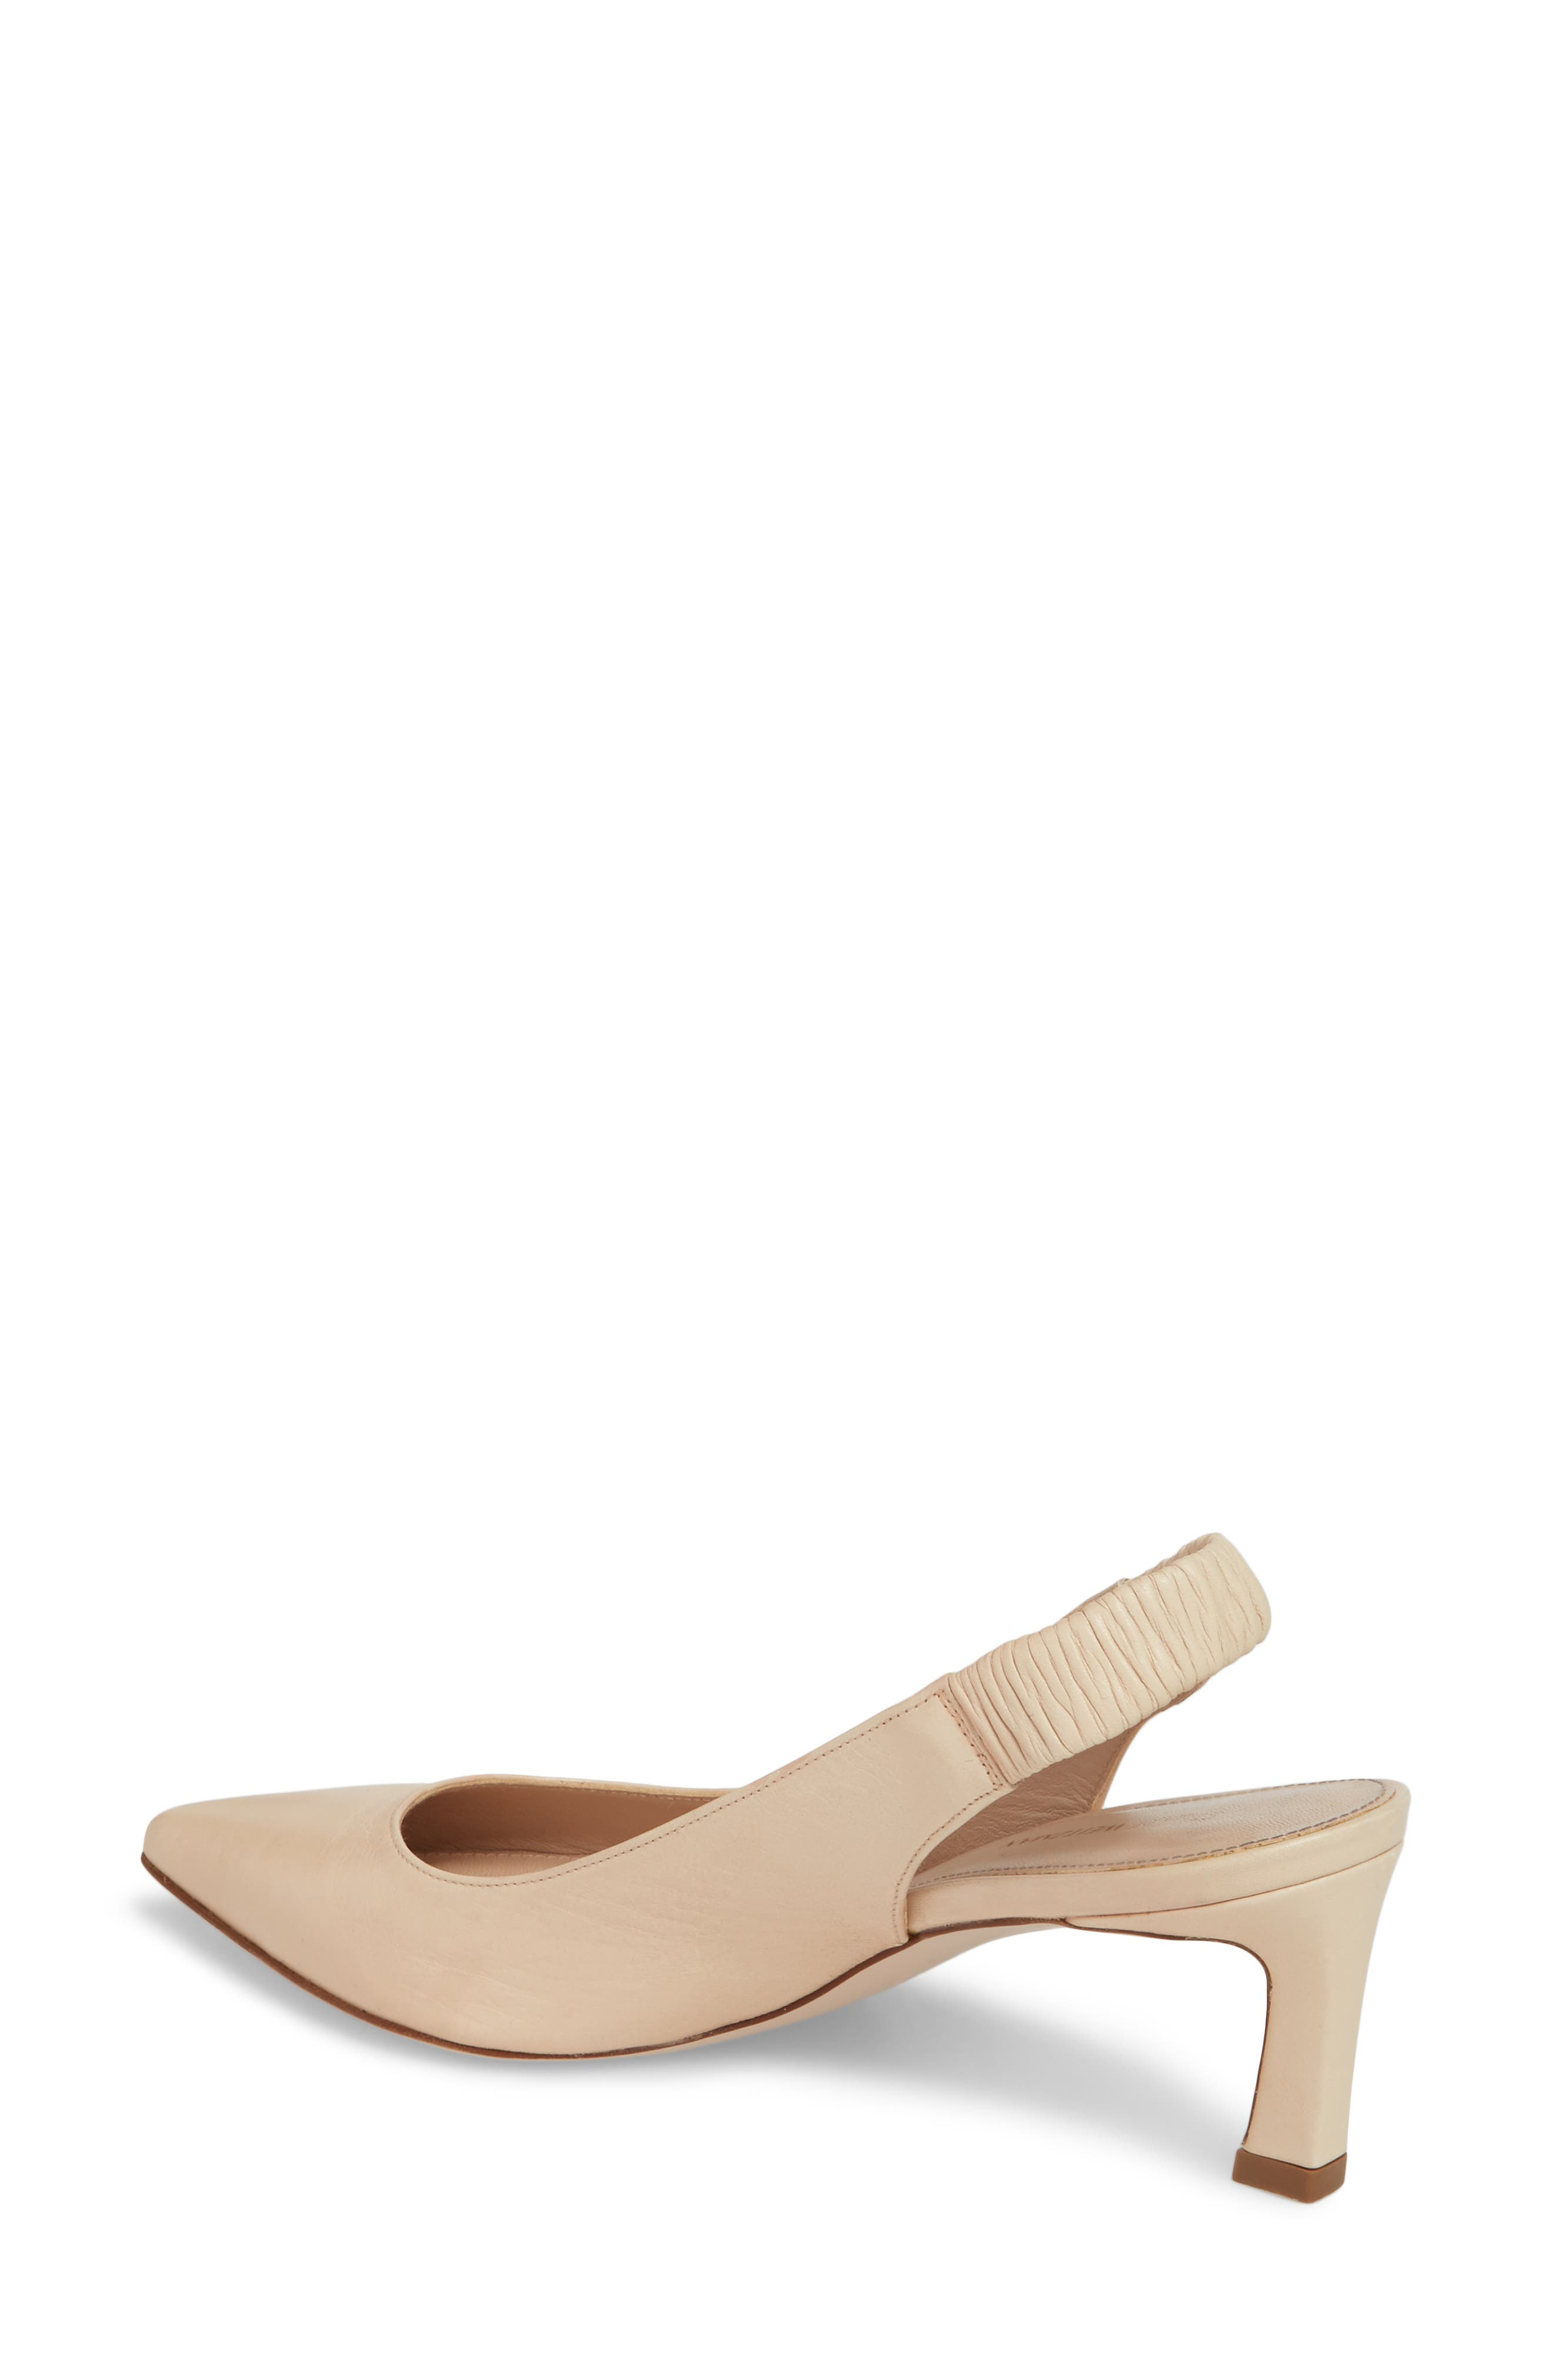 Hayday Slingback Pump,                             Alternate thumbnail 7, color,